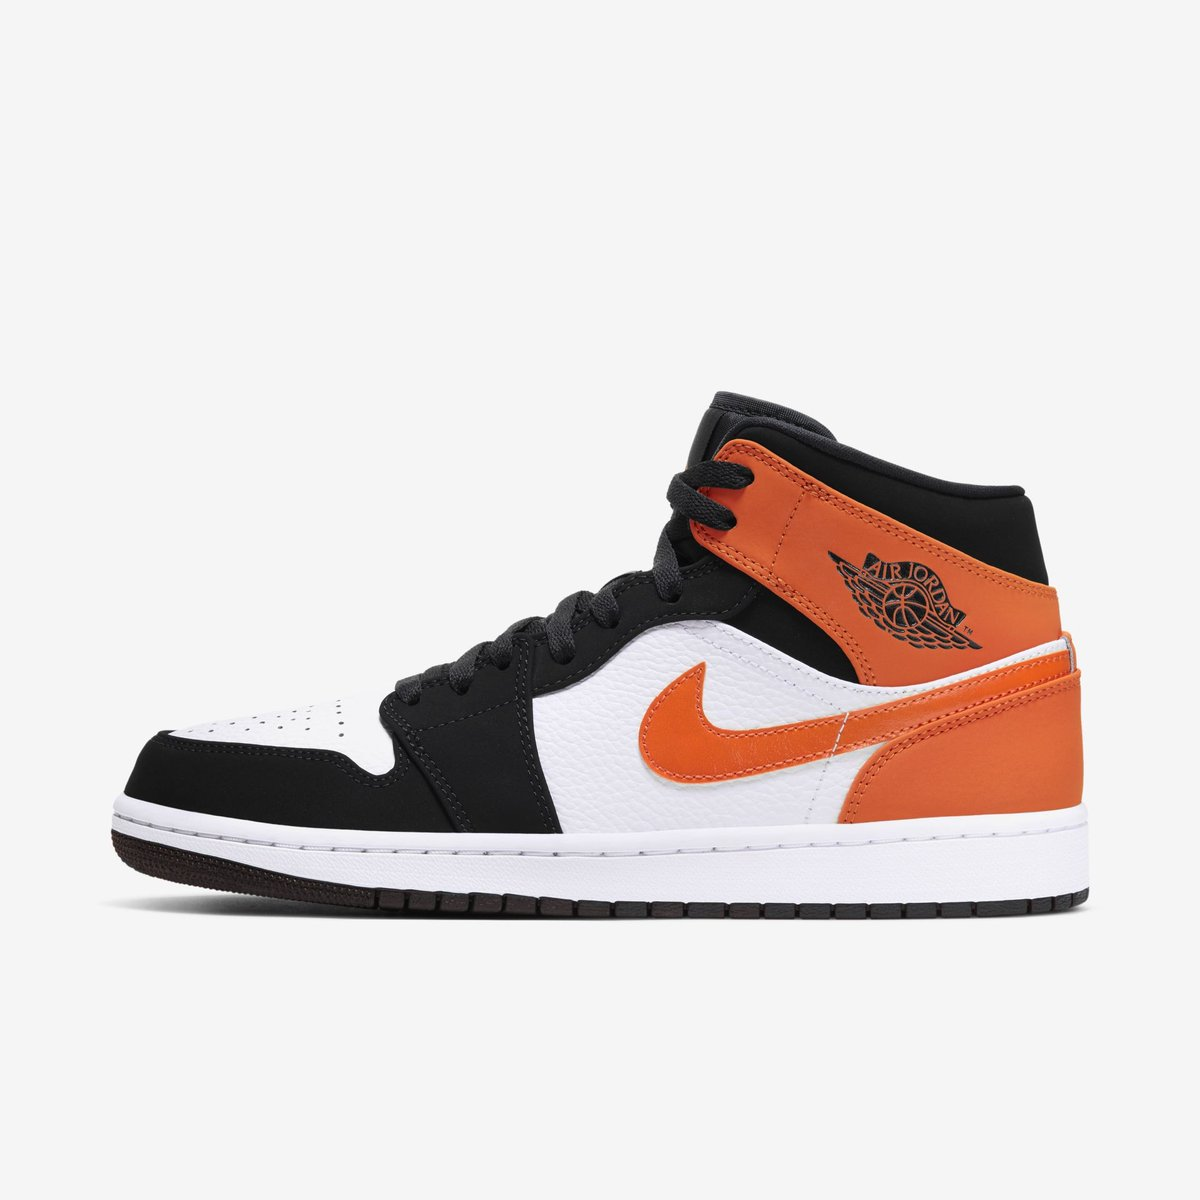 """SALE: Jordan 1 Mid """"Shattered Backboard"""" sizes 12+ only $87.97 direct on @nikestore. No code needed.  Link ->"""